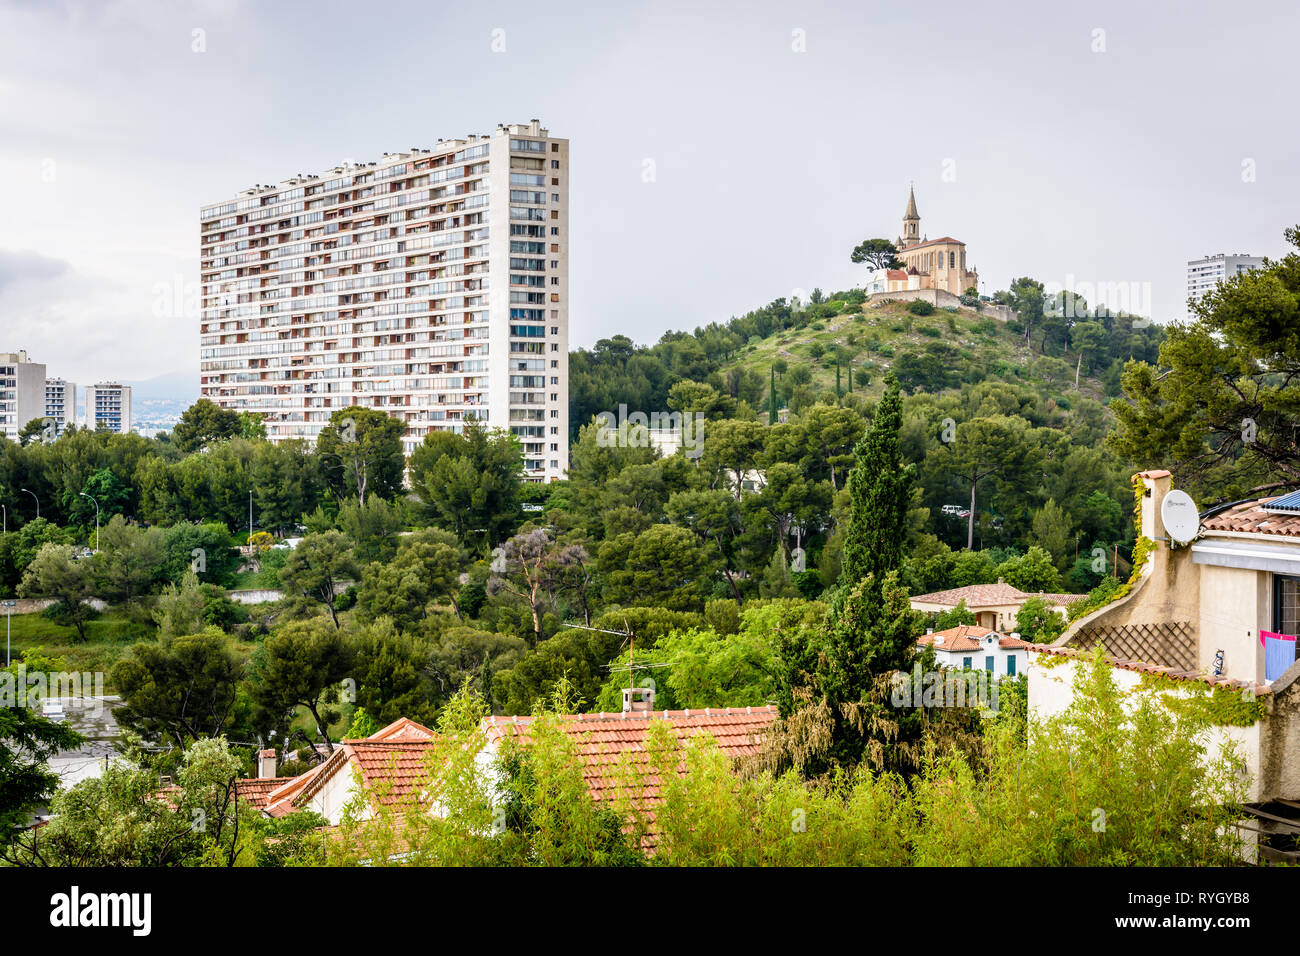 Saint-Joseph du Cabot chapel on Saint-Joseph hilltop in Le Cabot district and one of the residential buildings of the Residence Valmante in Marseille. - Stock Image